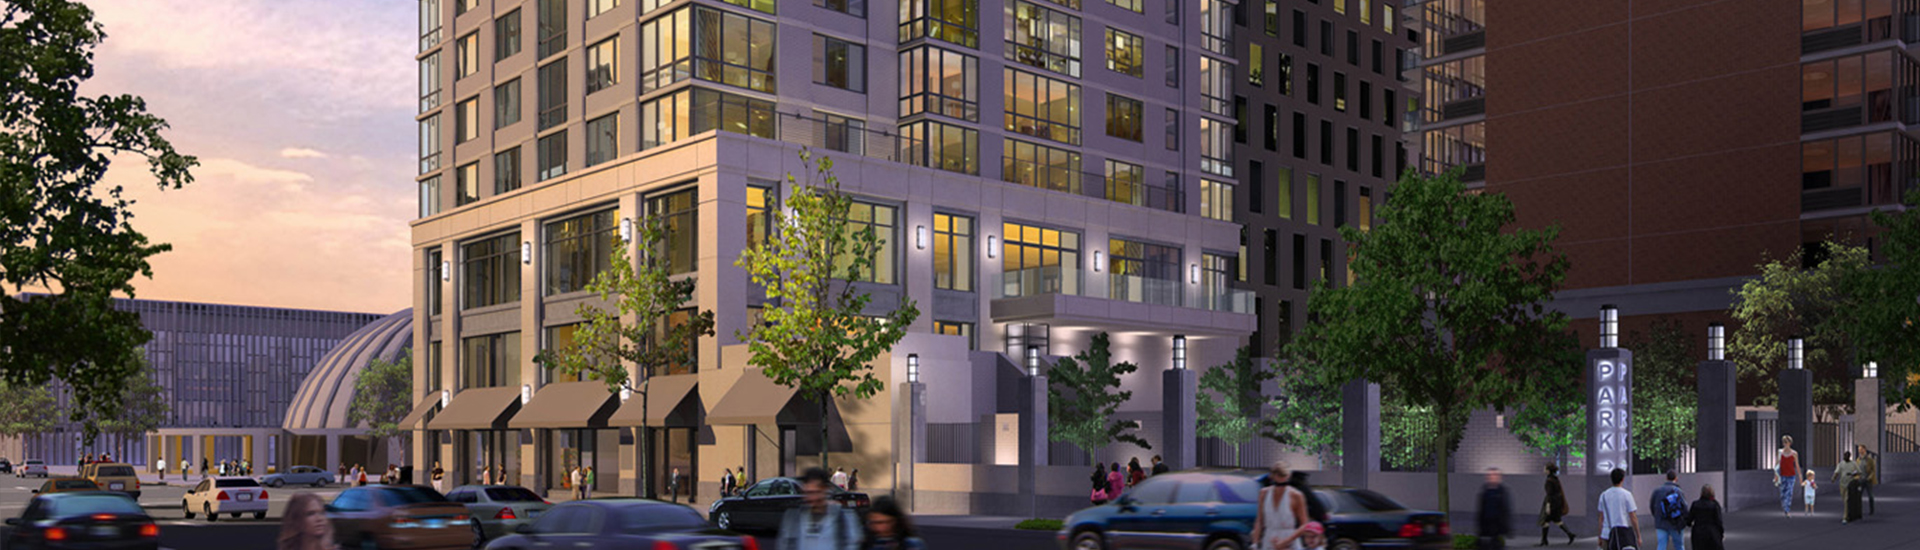 HAWTHORN PARK | THE ENCORE NYC FITNESS CENTER